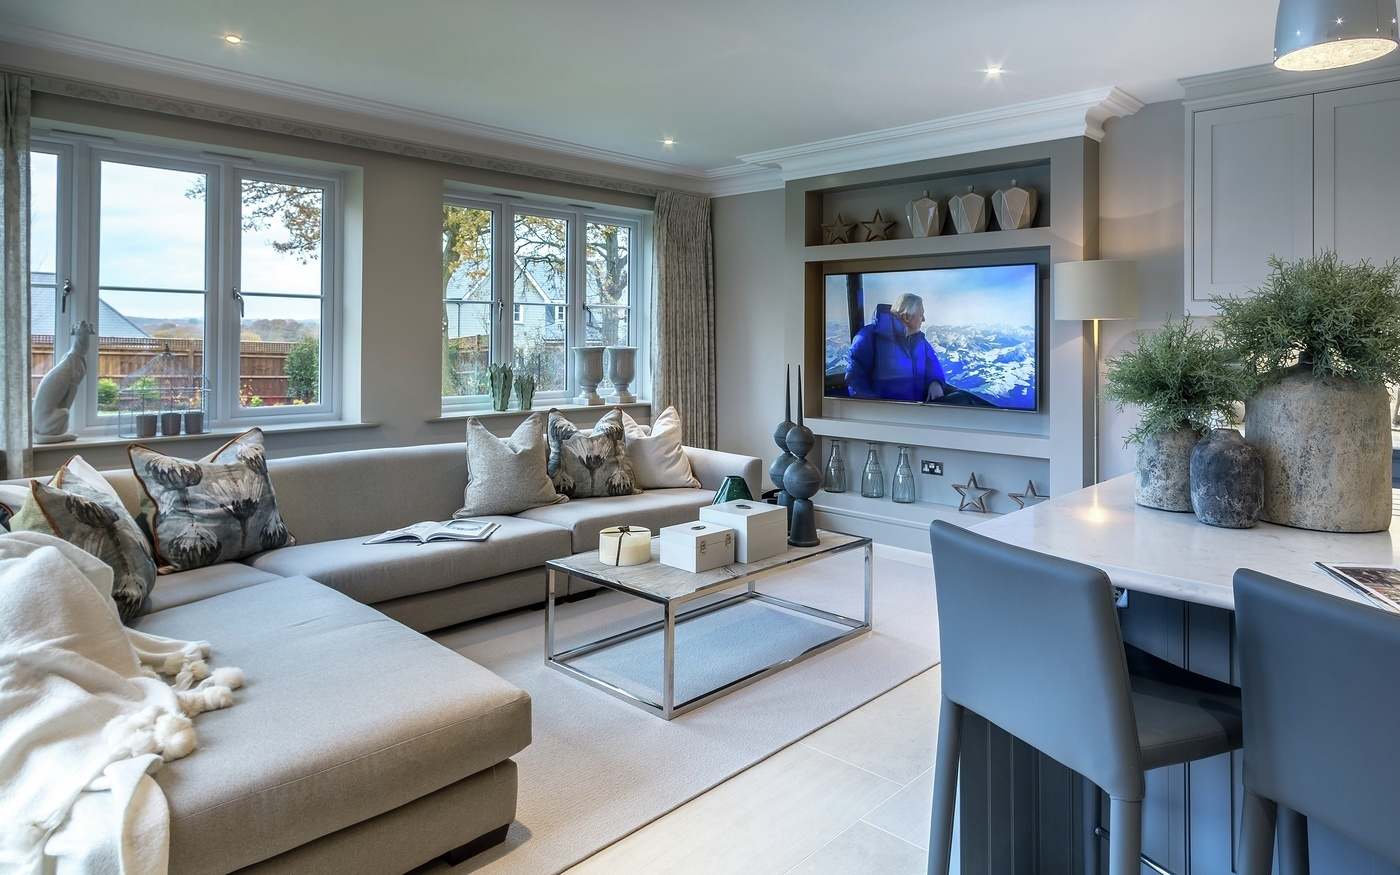 New Homes For Sale In Lingfield Surrey Luxury